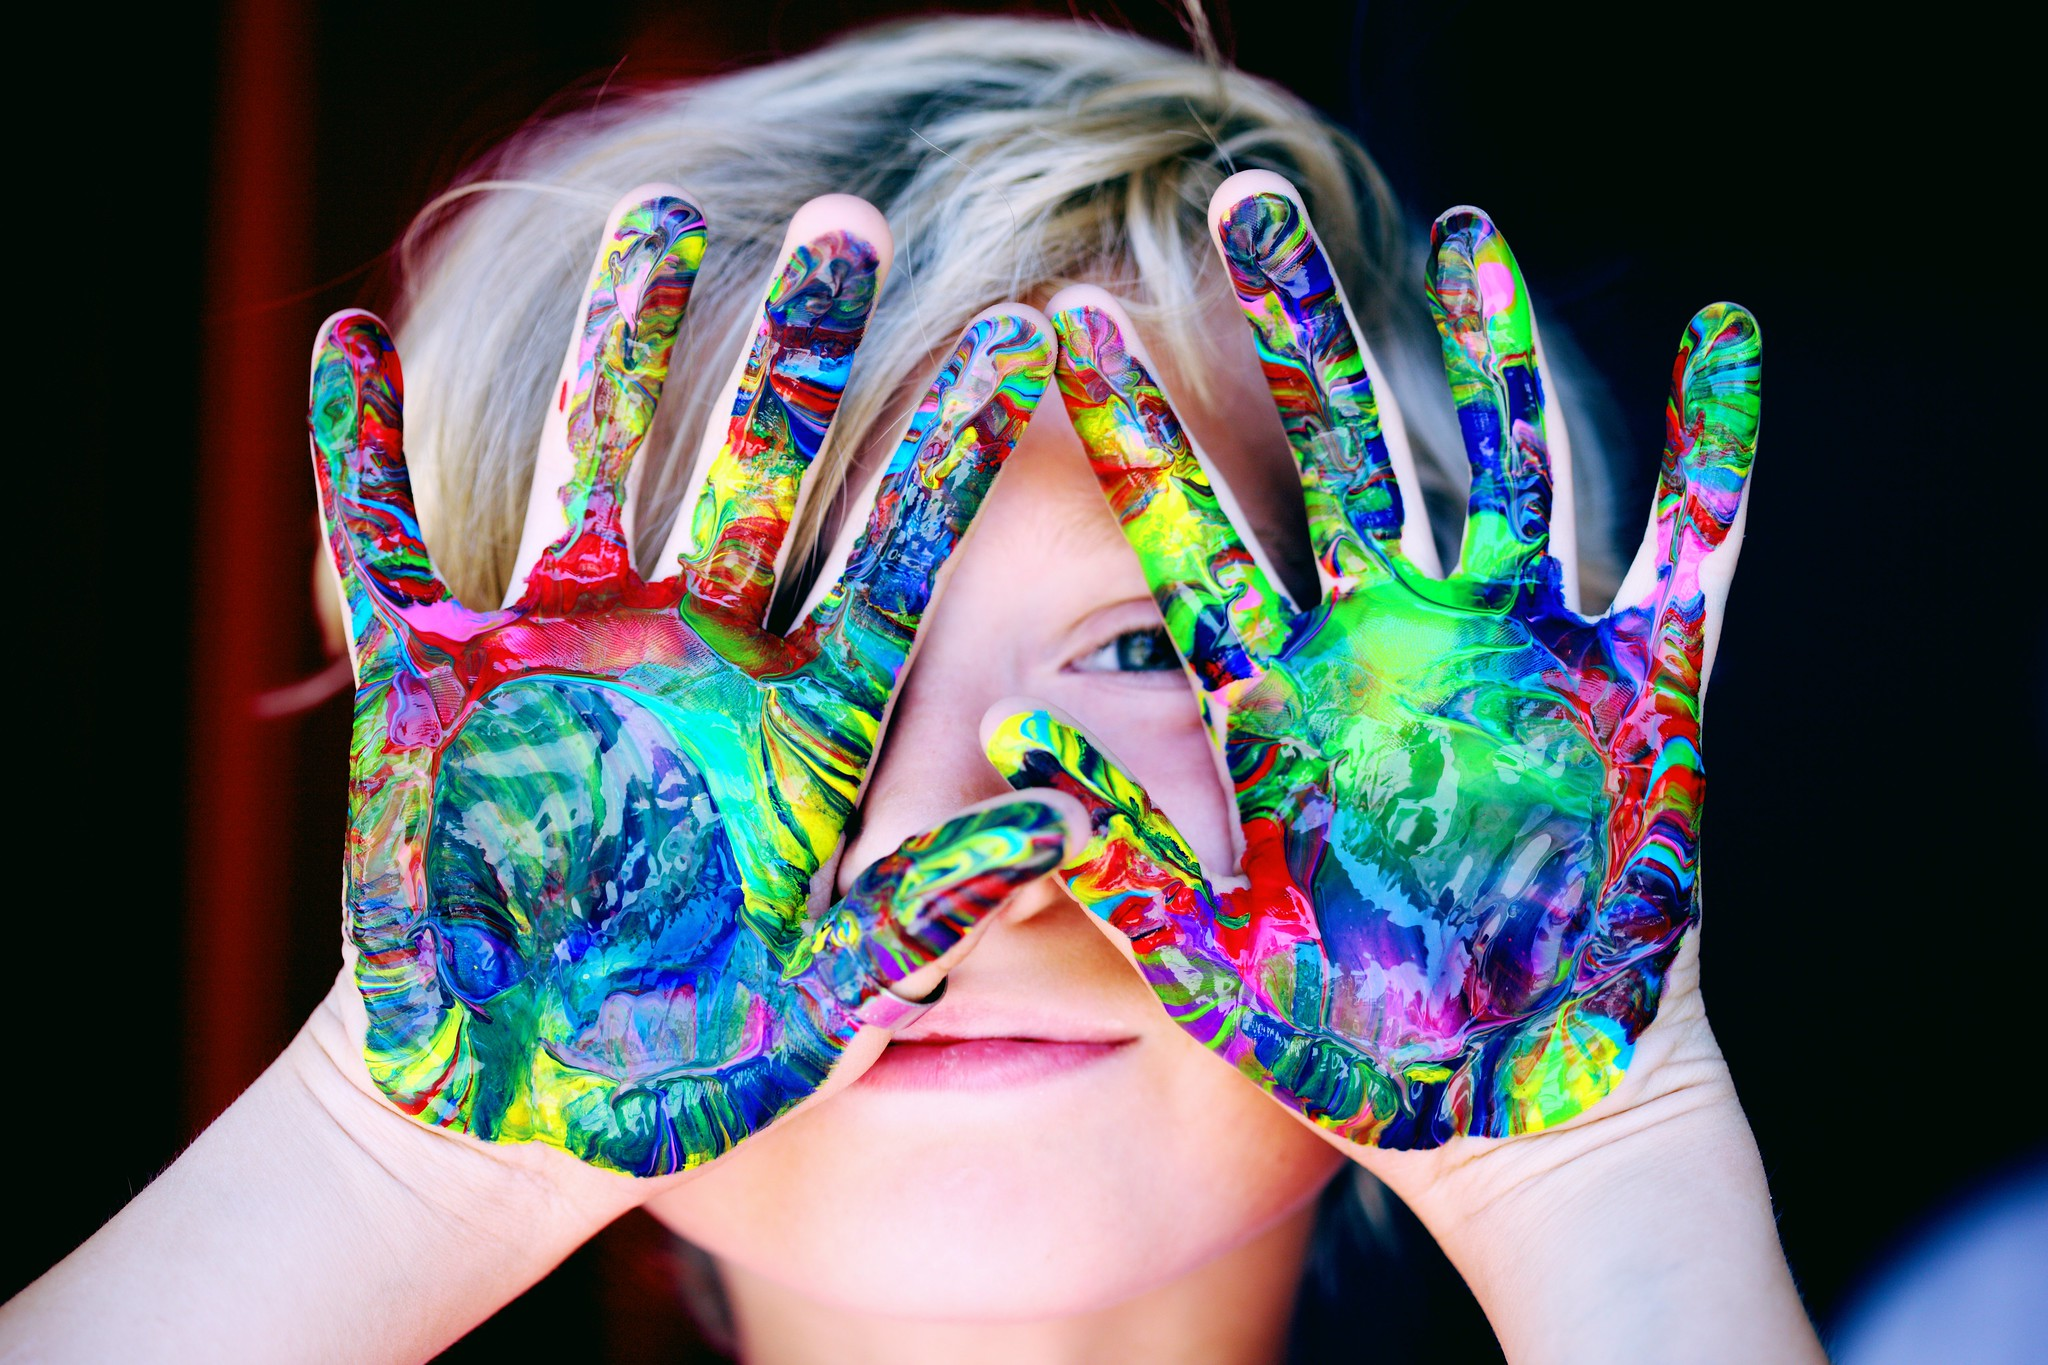 child holding up hands covered in neon paint